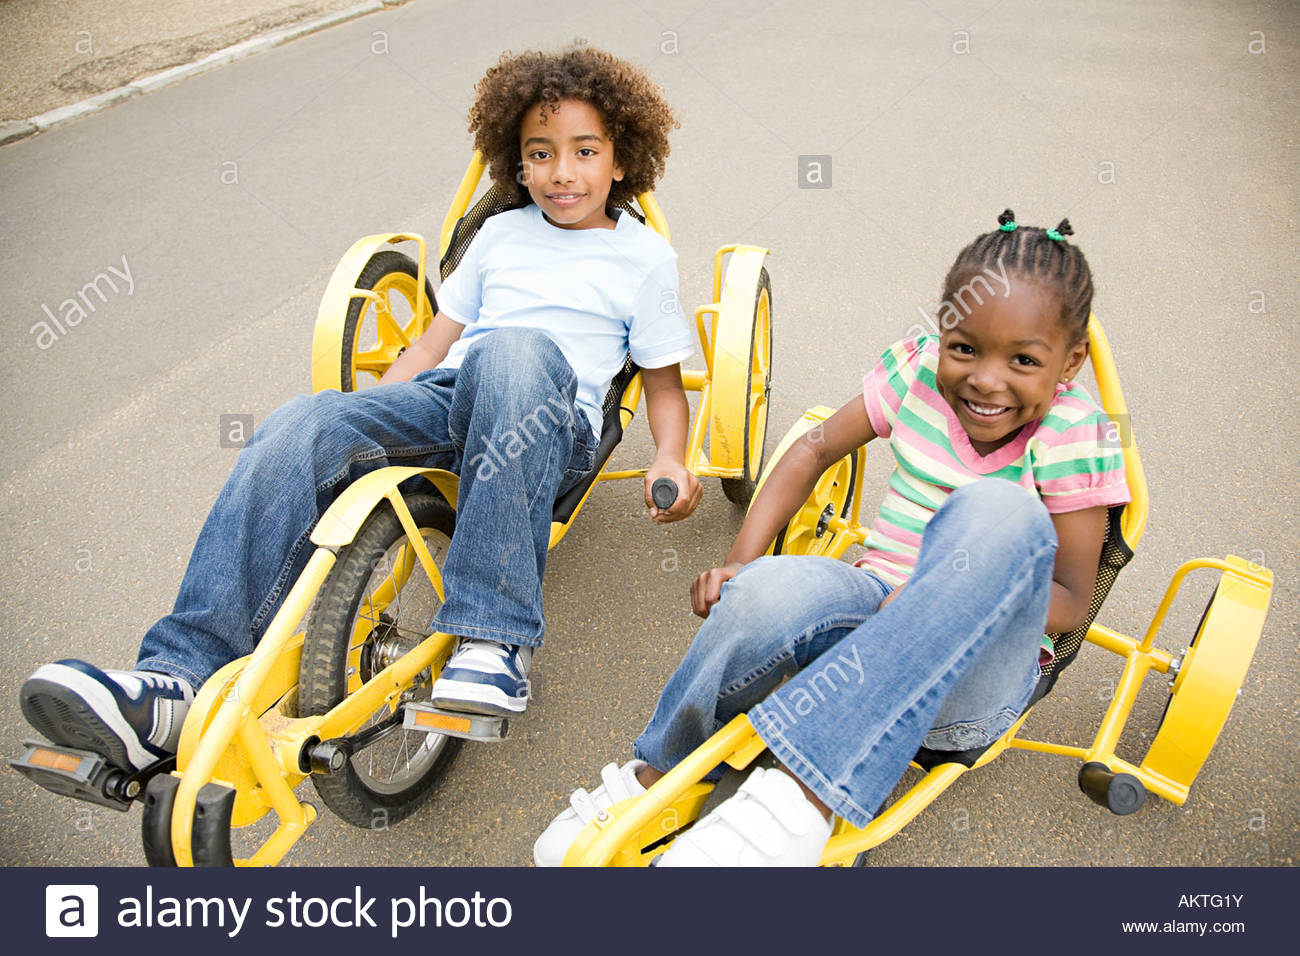 Boy and girl in tricycles - Stock Image